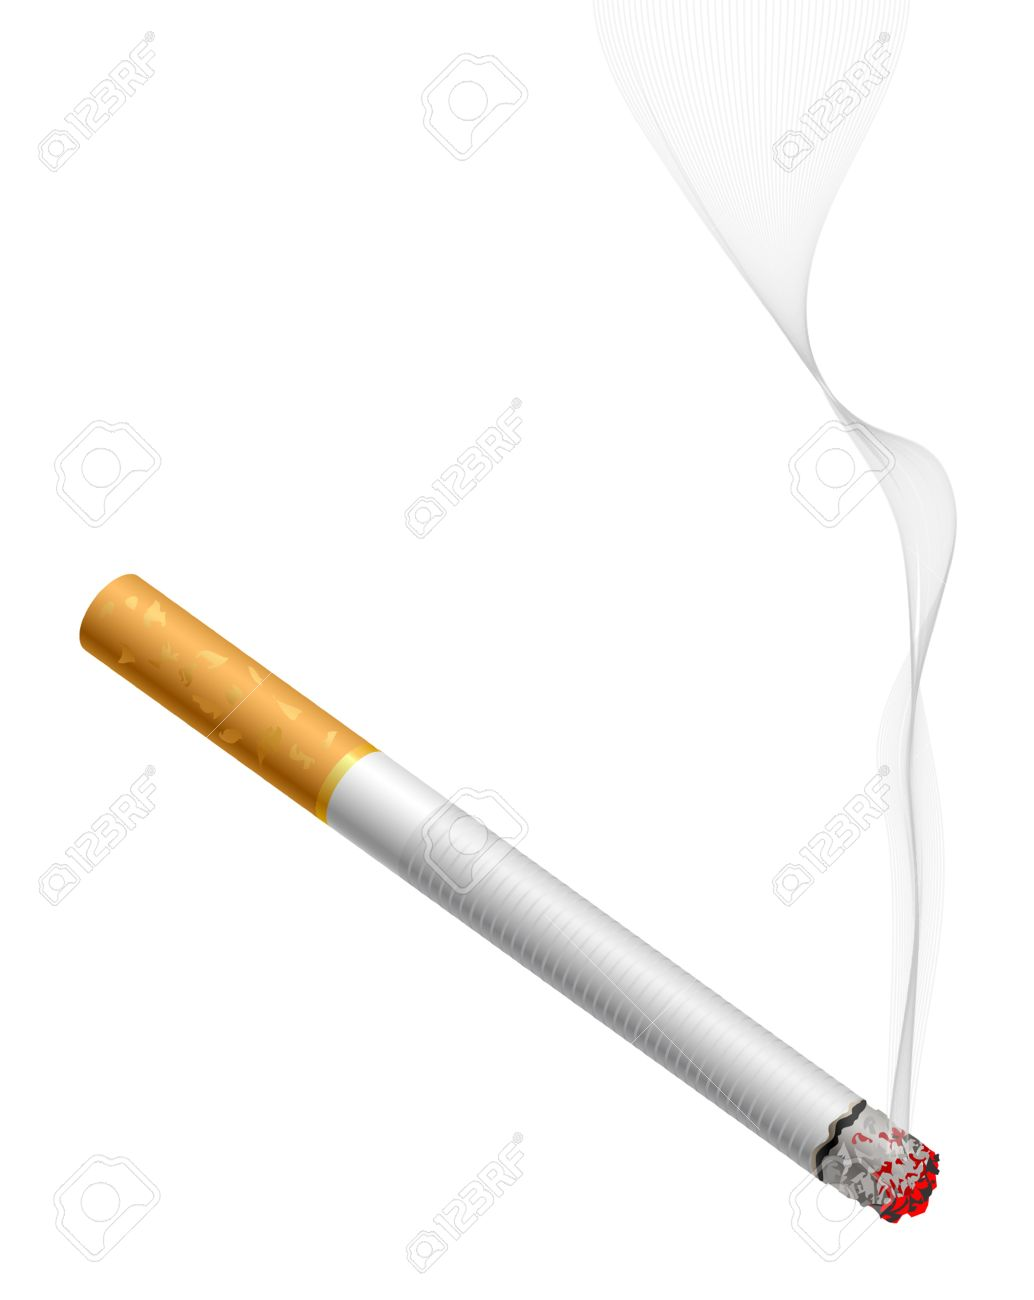 Smoldering cigarette with smoke isolated on white Stock Vector - 11575821